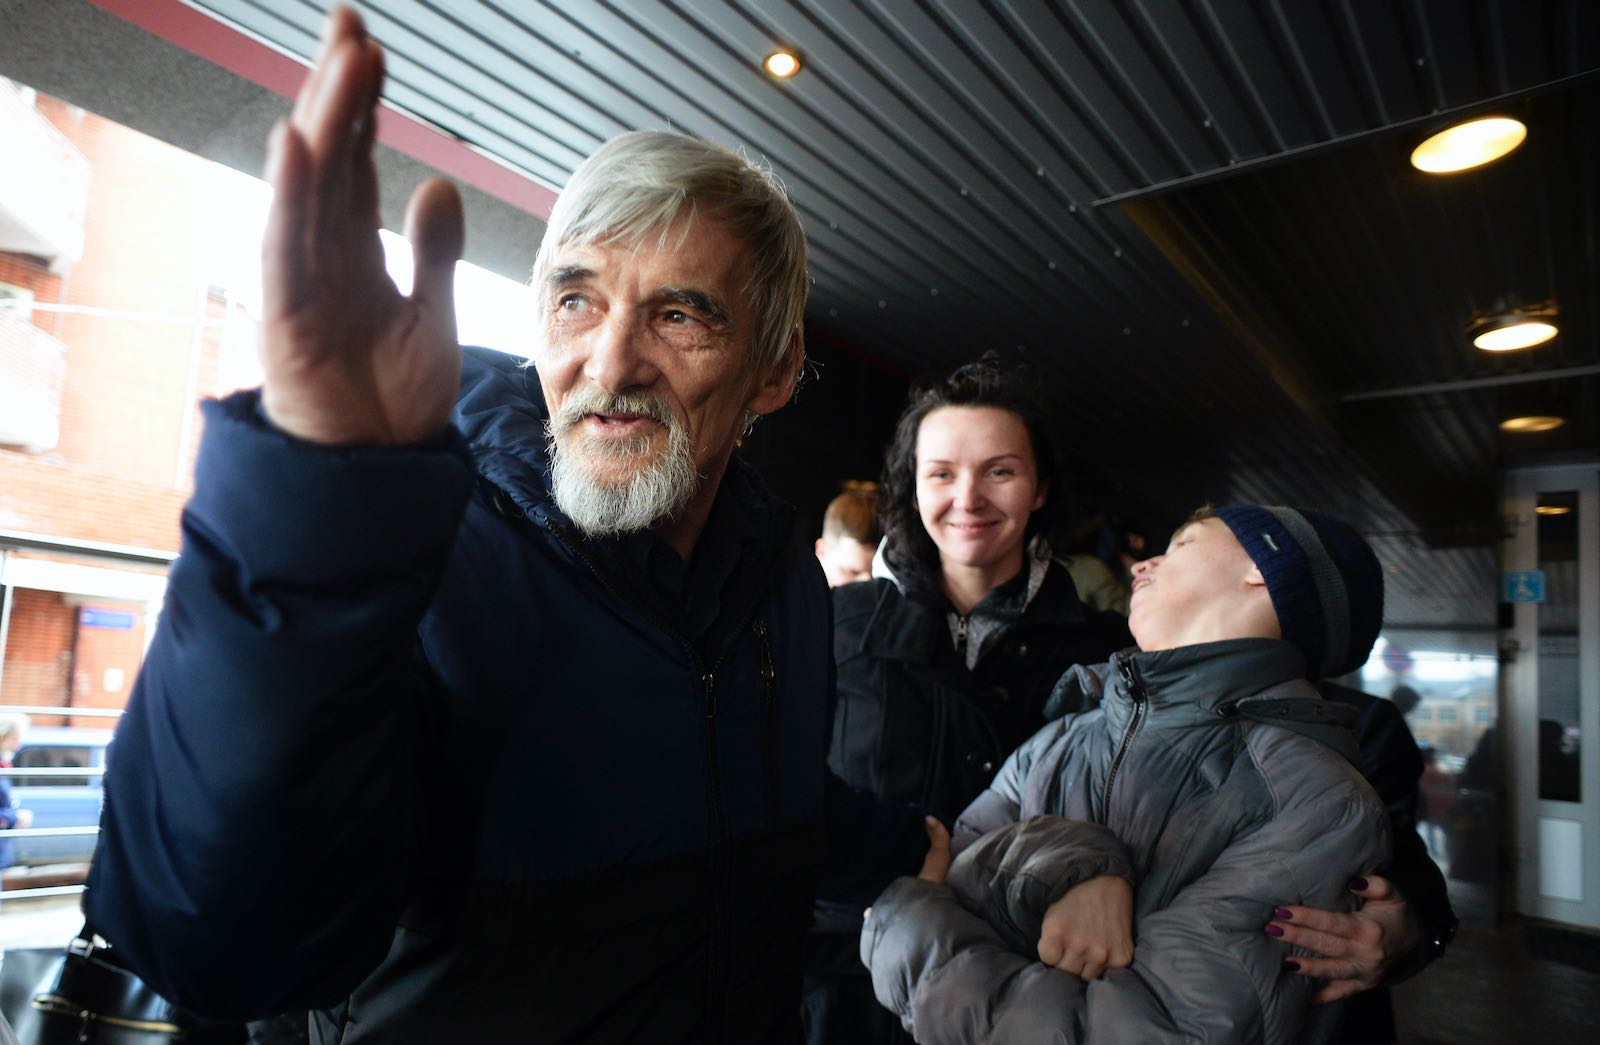 Gulag historian Yuri Dmitriev following his first trial, in which charges of child pornography were dismissed, Petrozavodsk, Russia, April 5, 2018